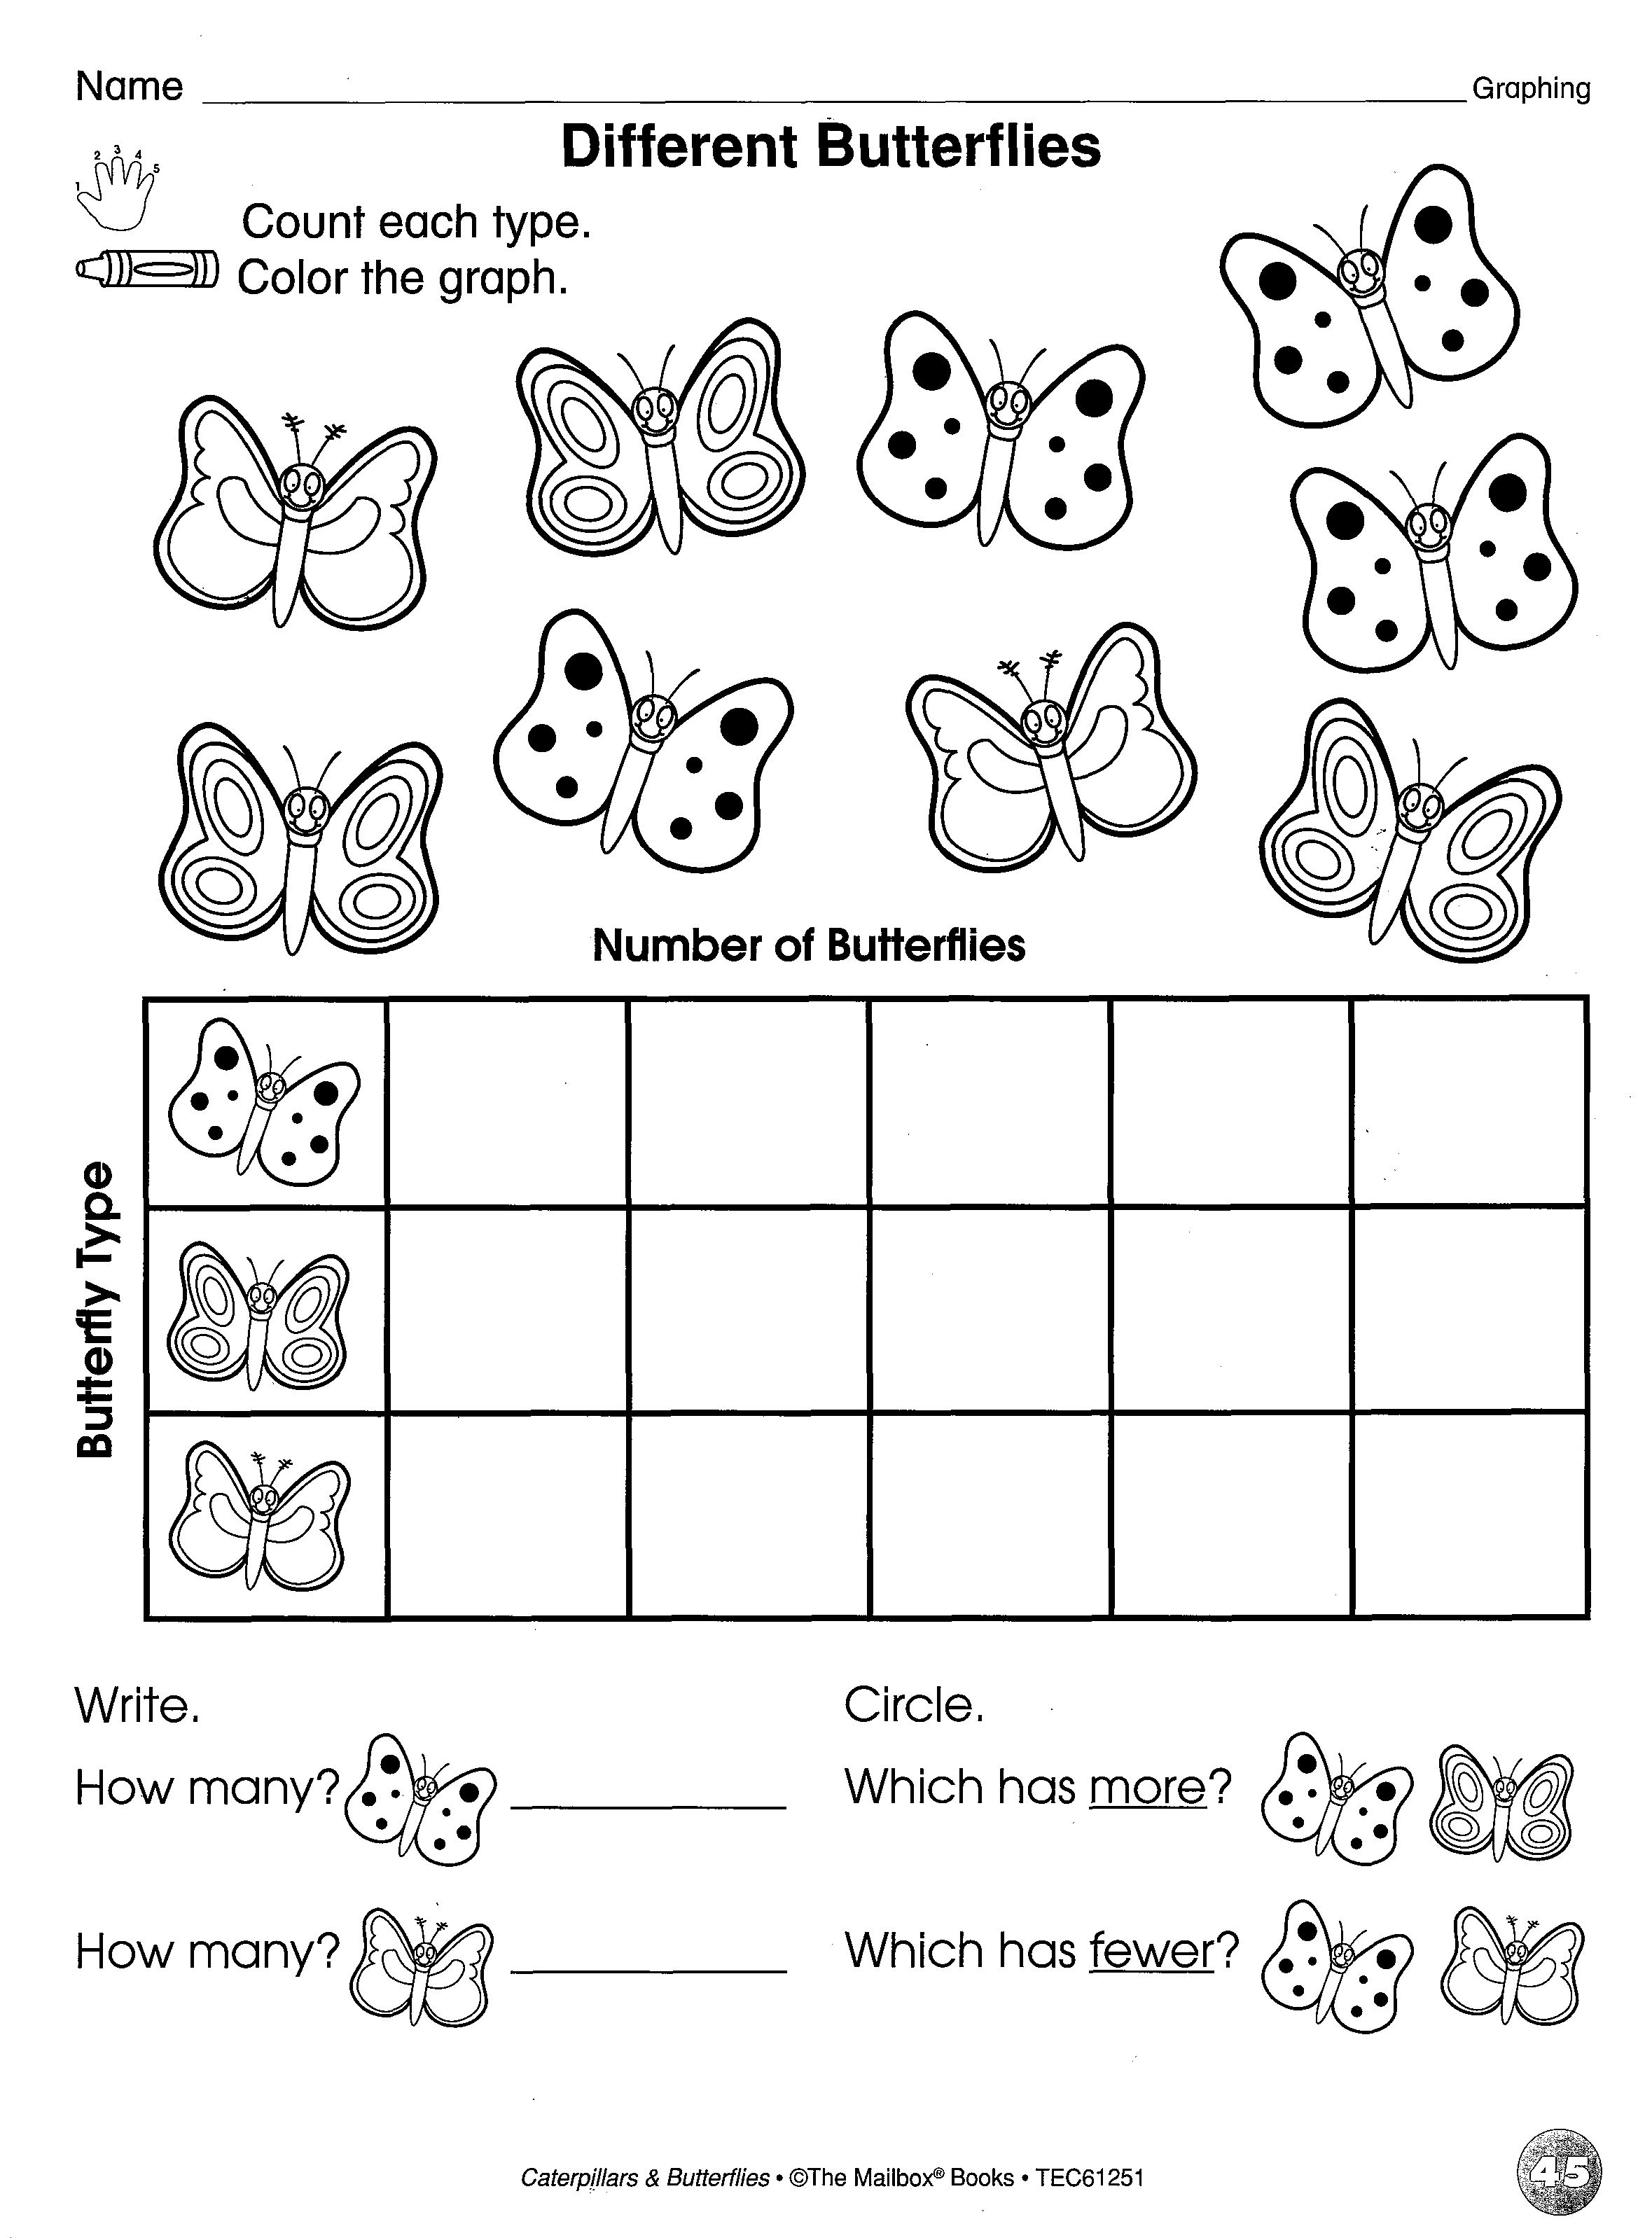 Butterfly Reproducible Page That Reinforces Counting Amp Graphing Skills Taken From Caterpillars